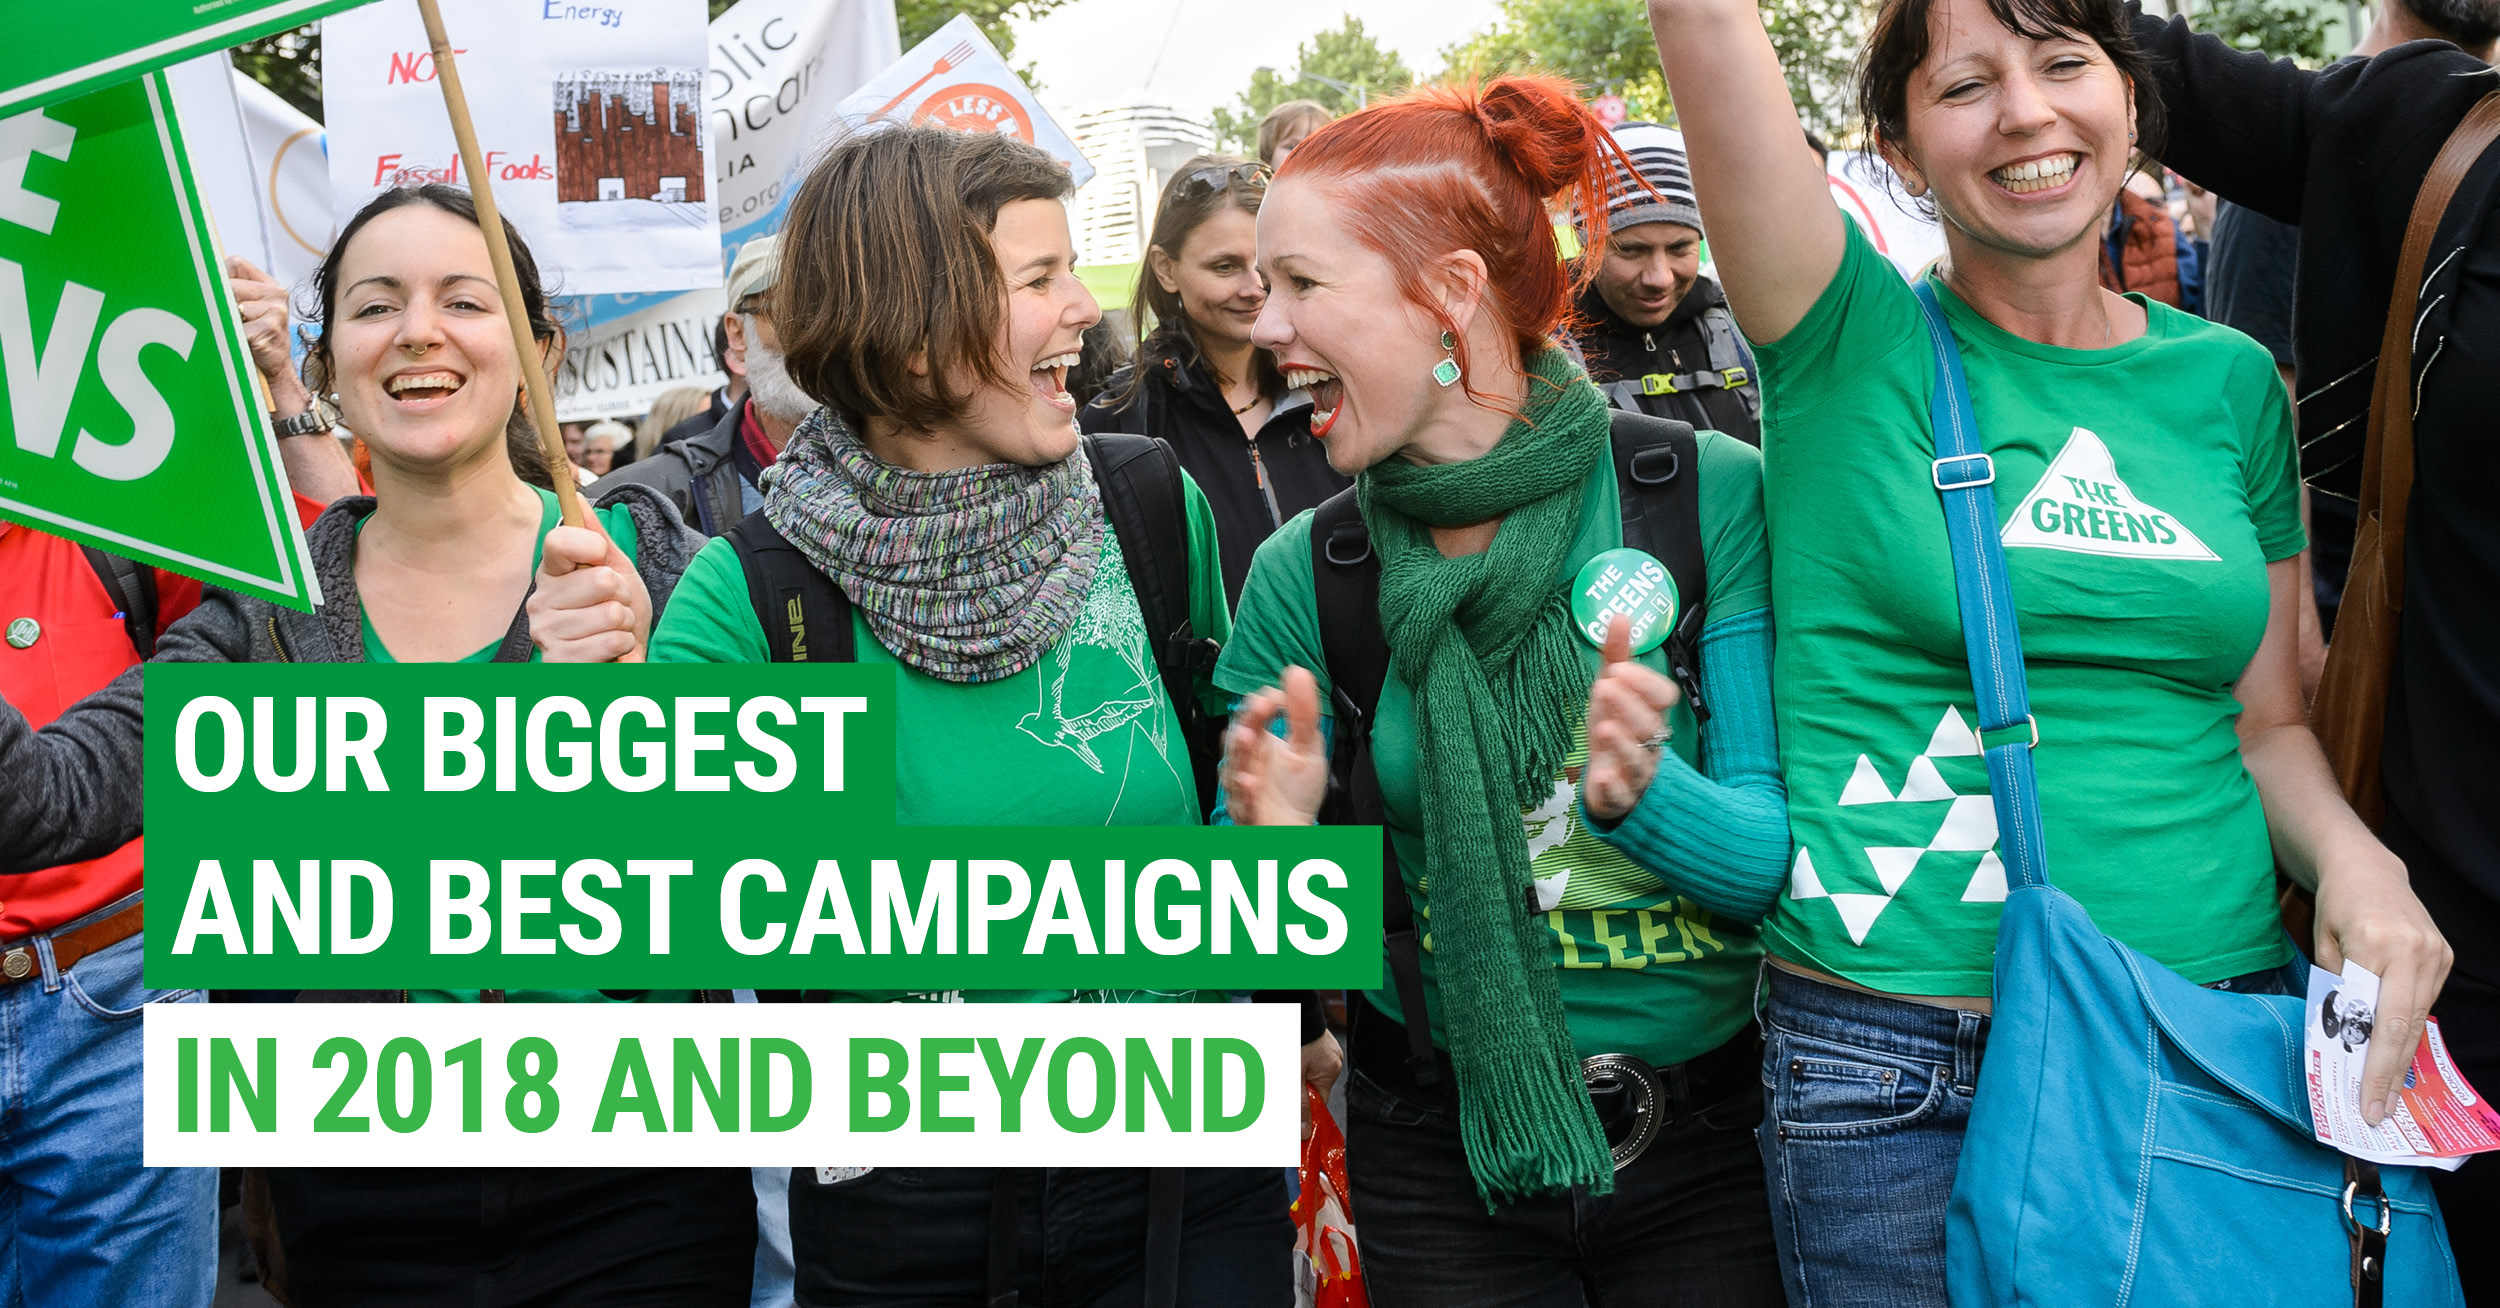 Our biggest ever campaigns in 2018 and beyond